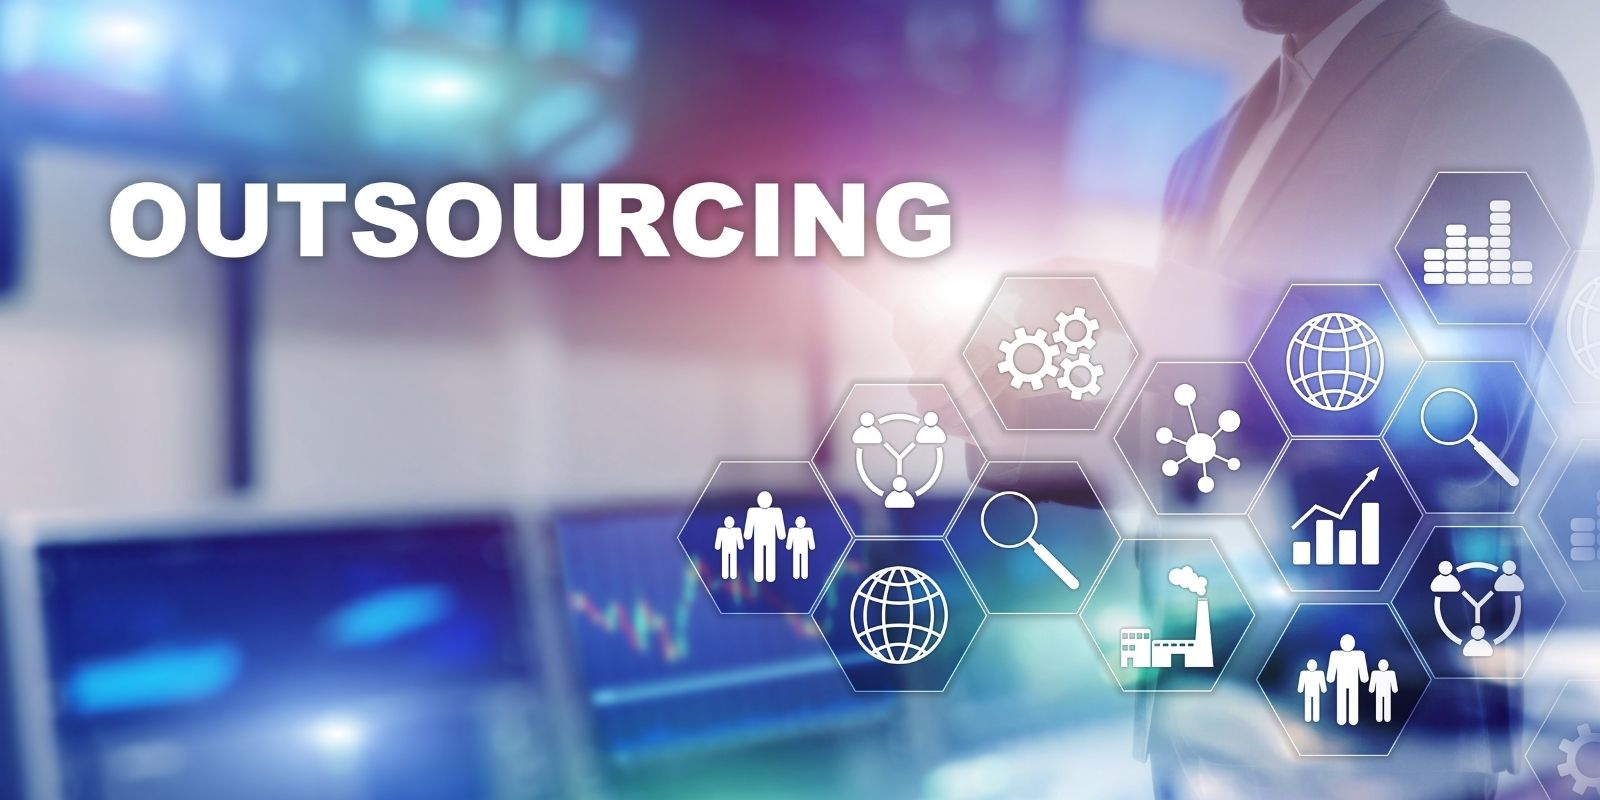 Benefits of Outsourcing Your Ecommerce Business